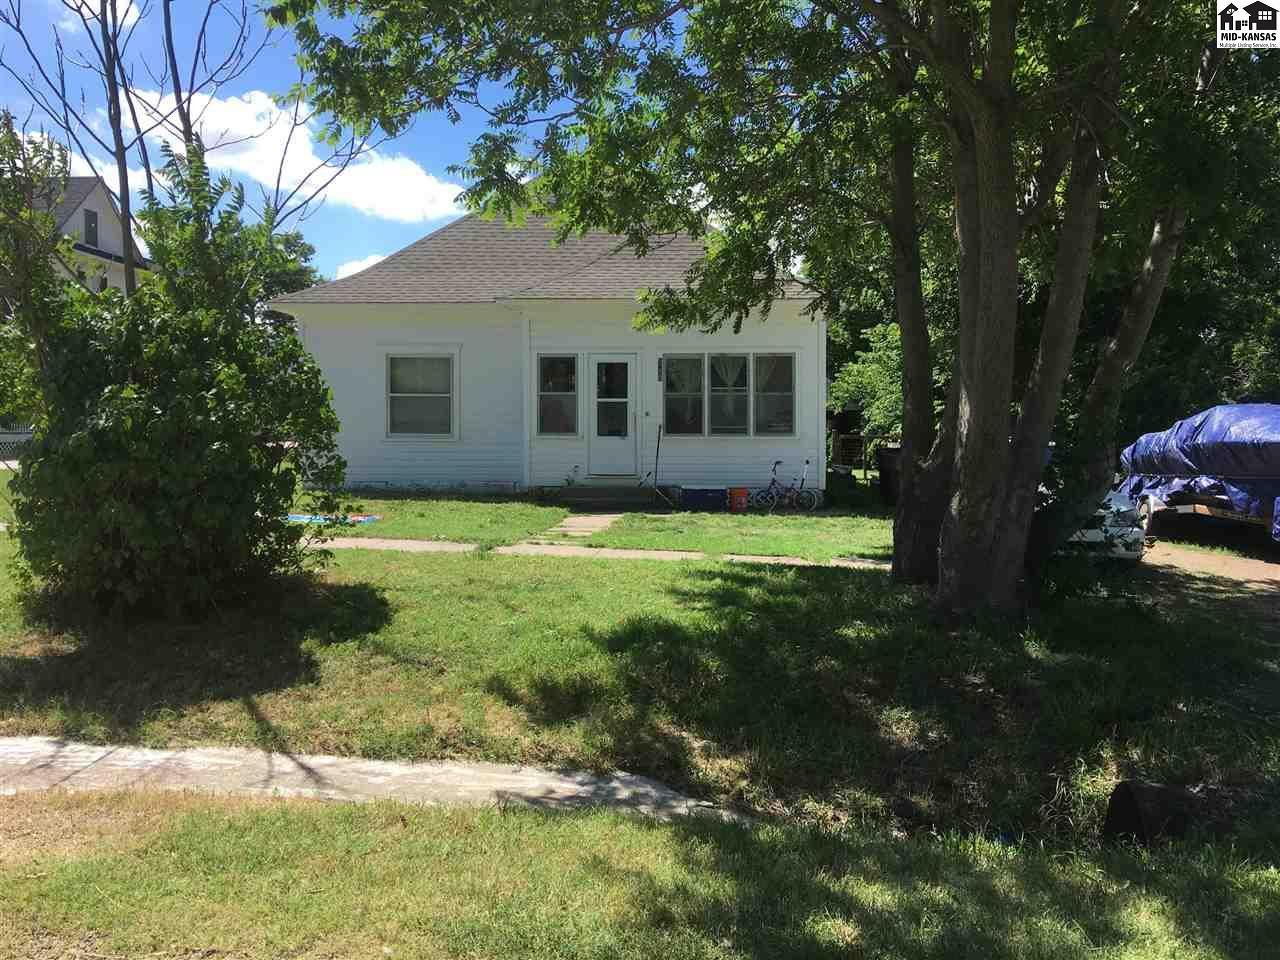 Check out this 2 bedroom, 1 bath in Little River 1 block west of Main street.